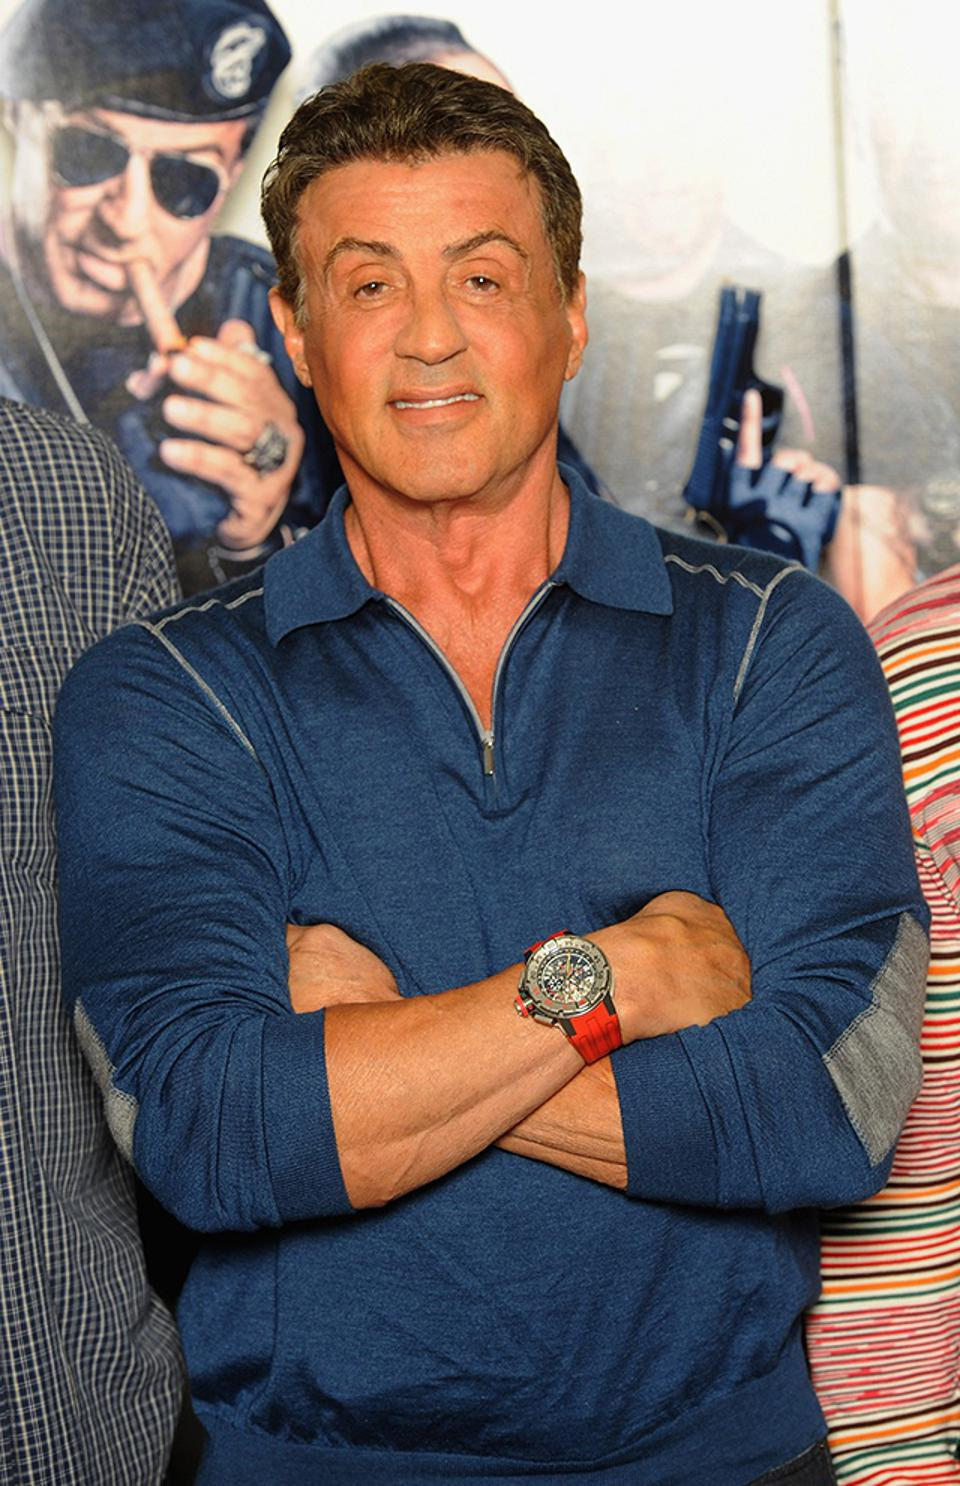 Sylvester Stallone wearing his Richard Mille RM 032 in the film Expendables III.